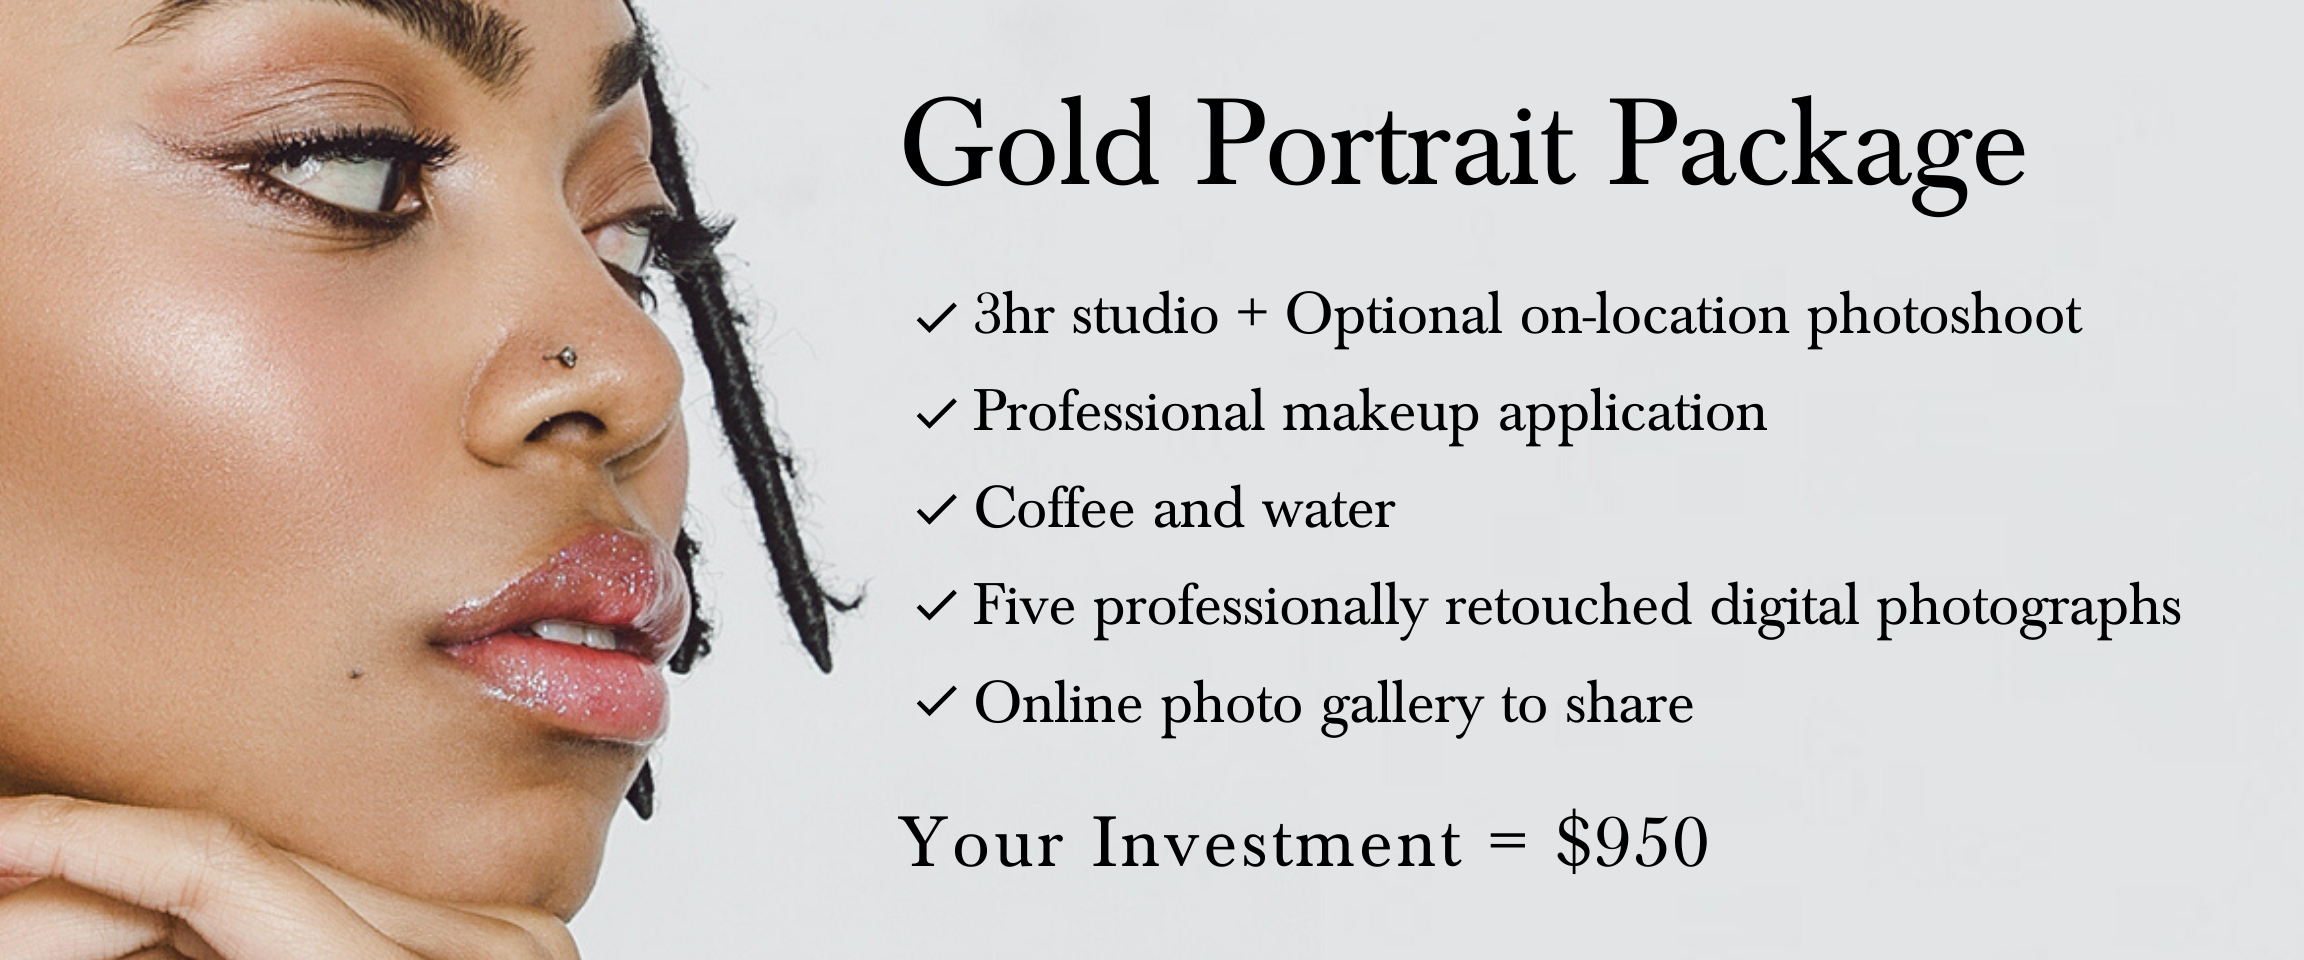 3hr studio + optional on-location photoshoot, professional makeup application, coffee and water, five professionally retouched digital photographs, and an online photo gallery to share.